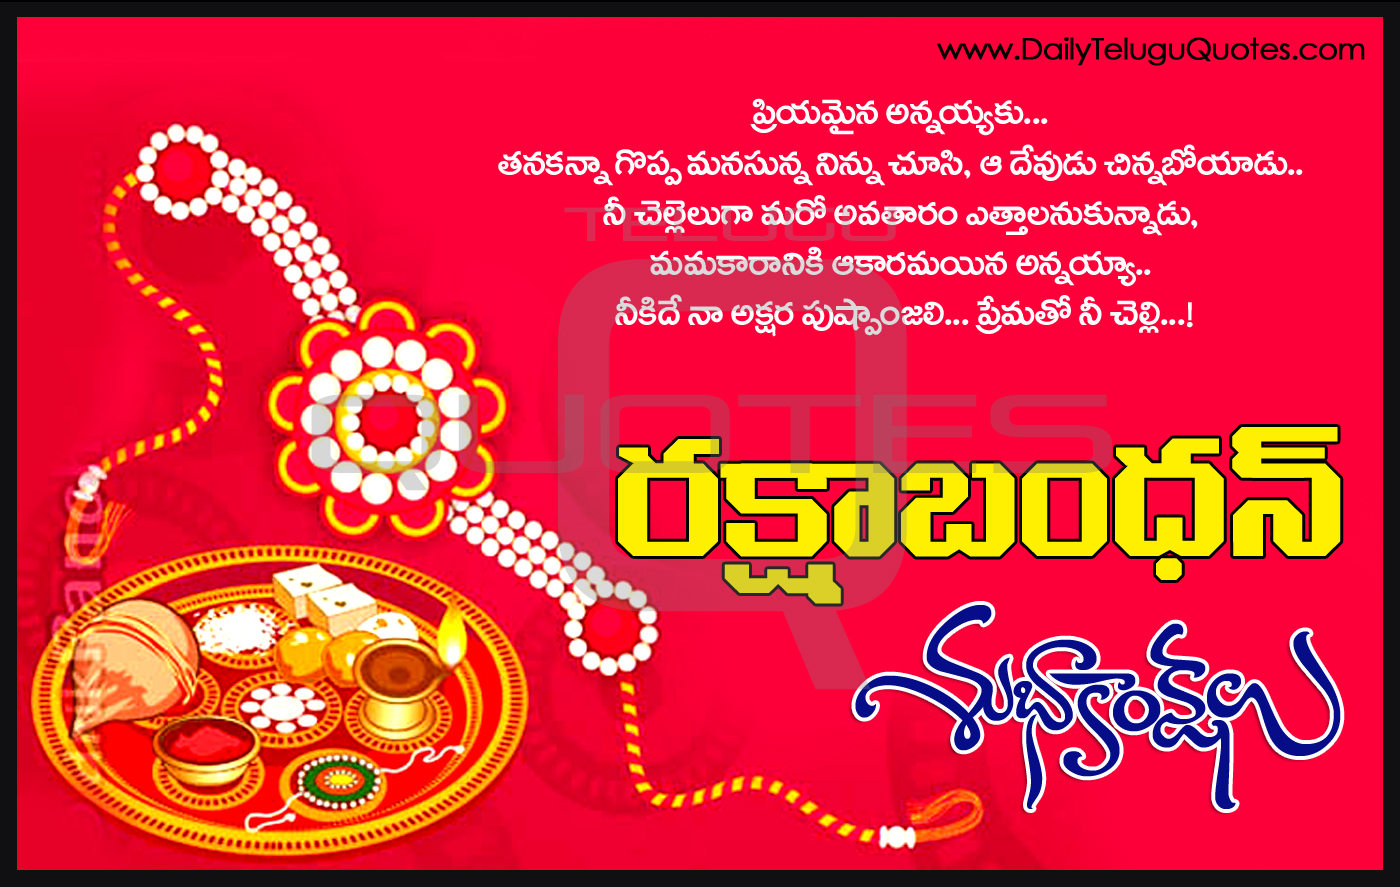 Telugu raksha bandhan greetings hd wallpapers best loveble quotes happy rakshabandan greetings life inspiration telugu quotes rakhi kristyandbryce Image collections